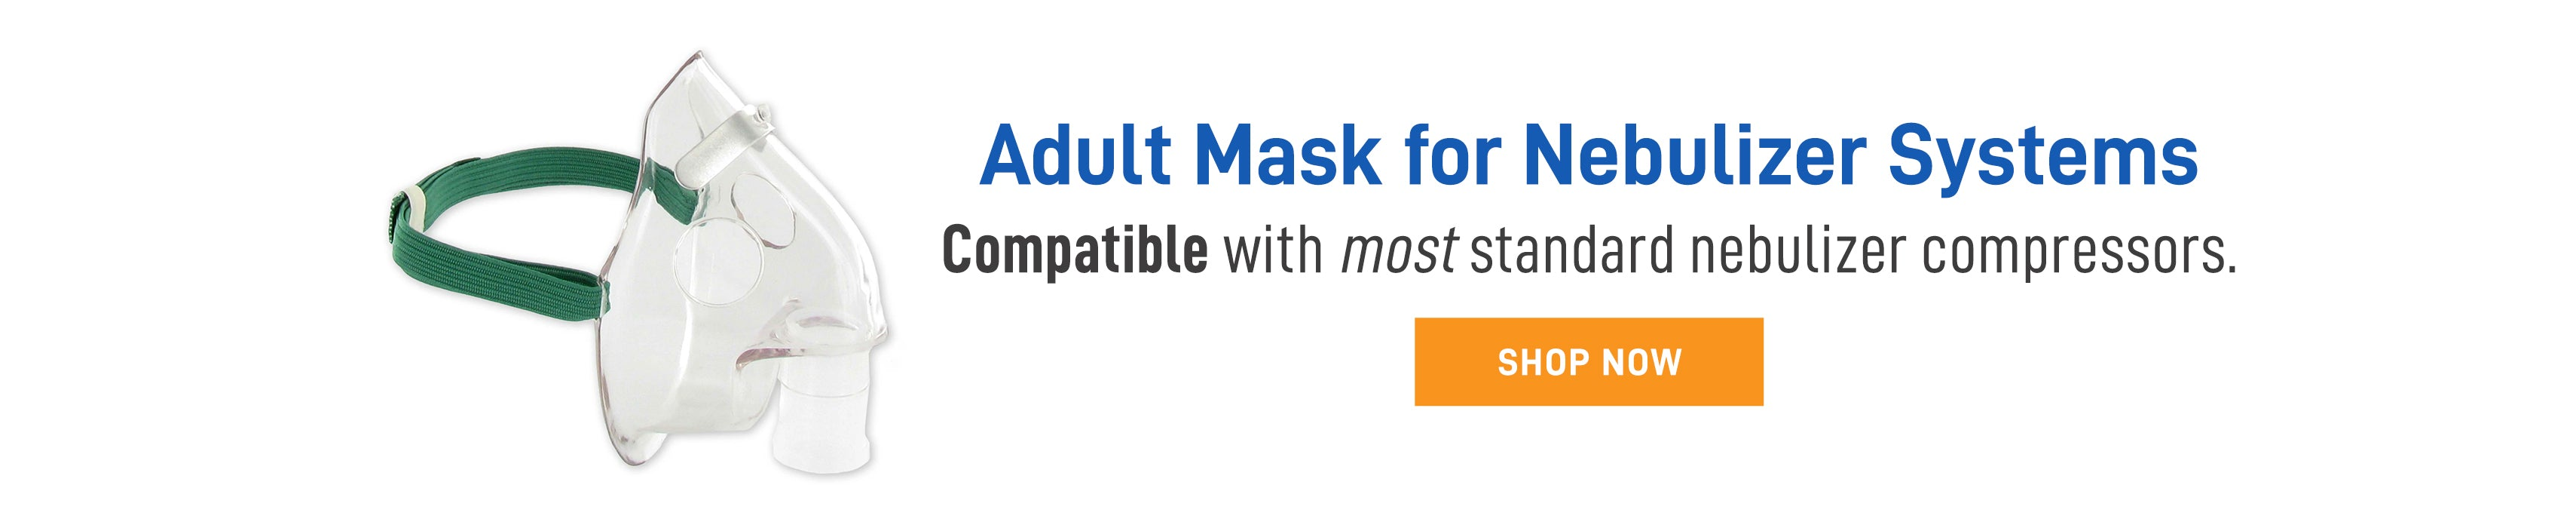 Adult mask for most nebulizer systems